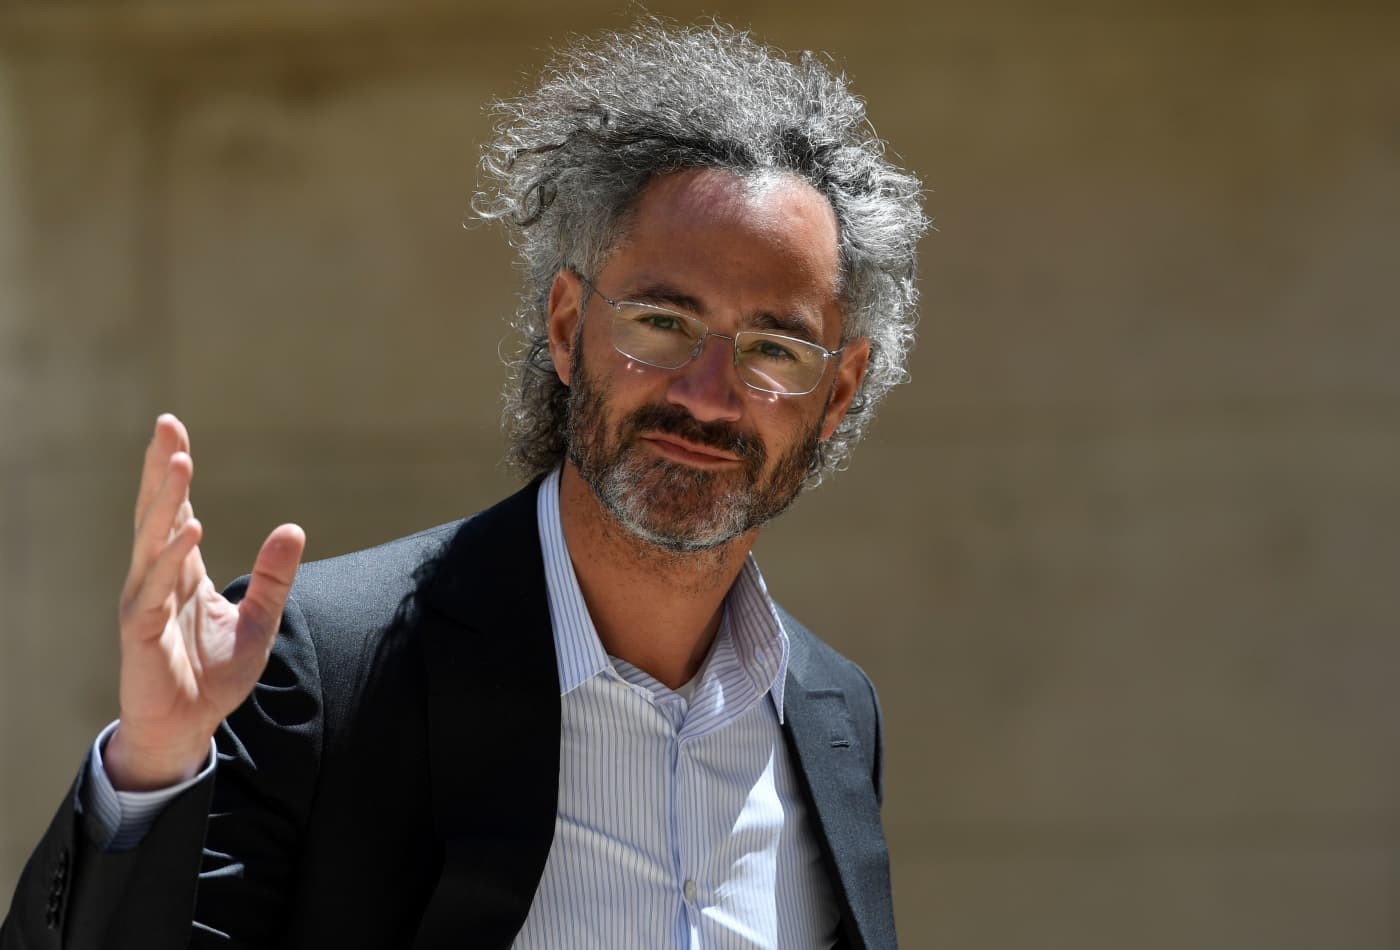 Palantir is going public after 17 years — here's what it does and why it's been controversial